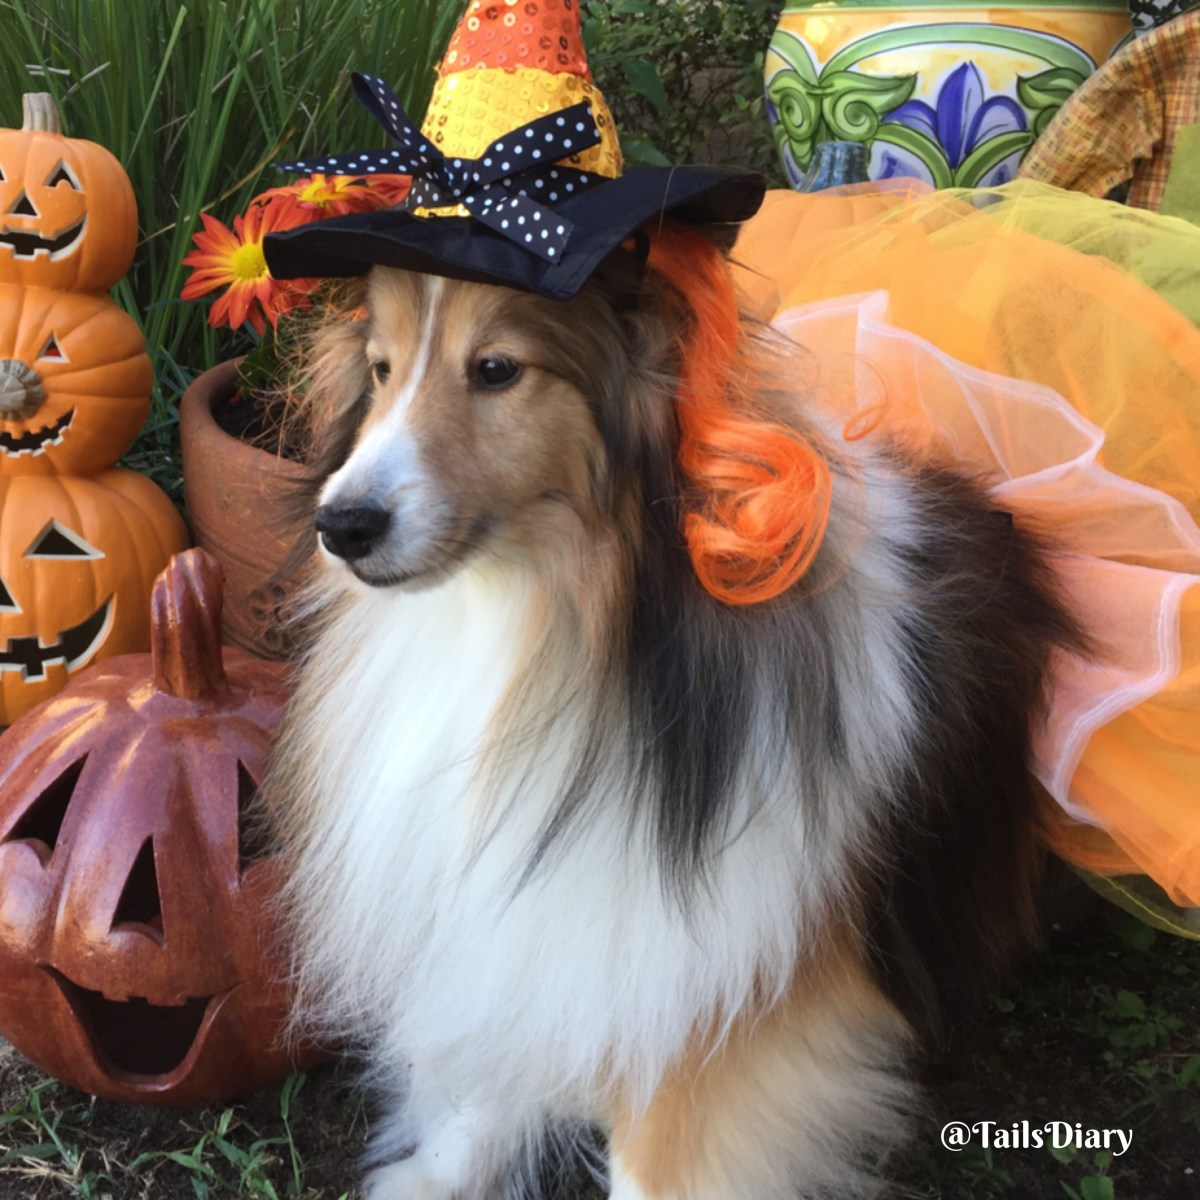 Pet Halloween Costumes Guide for Dogs and Cats